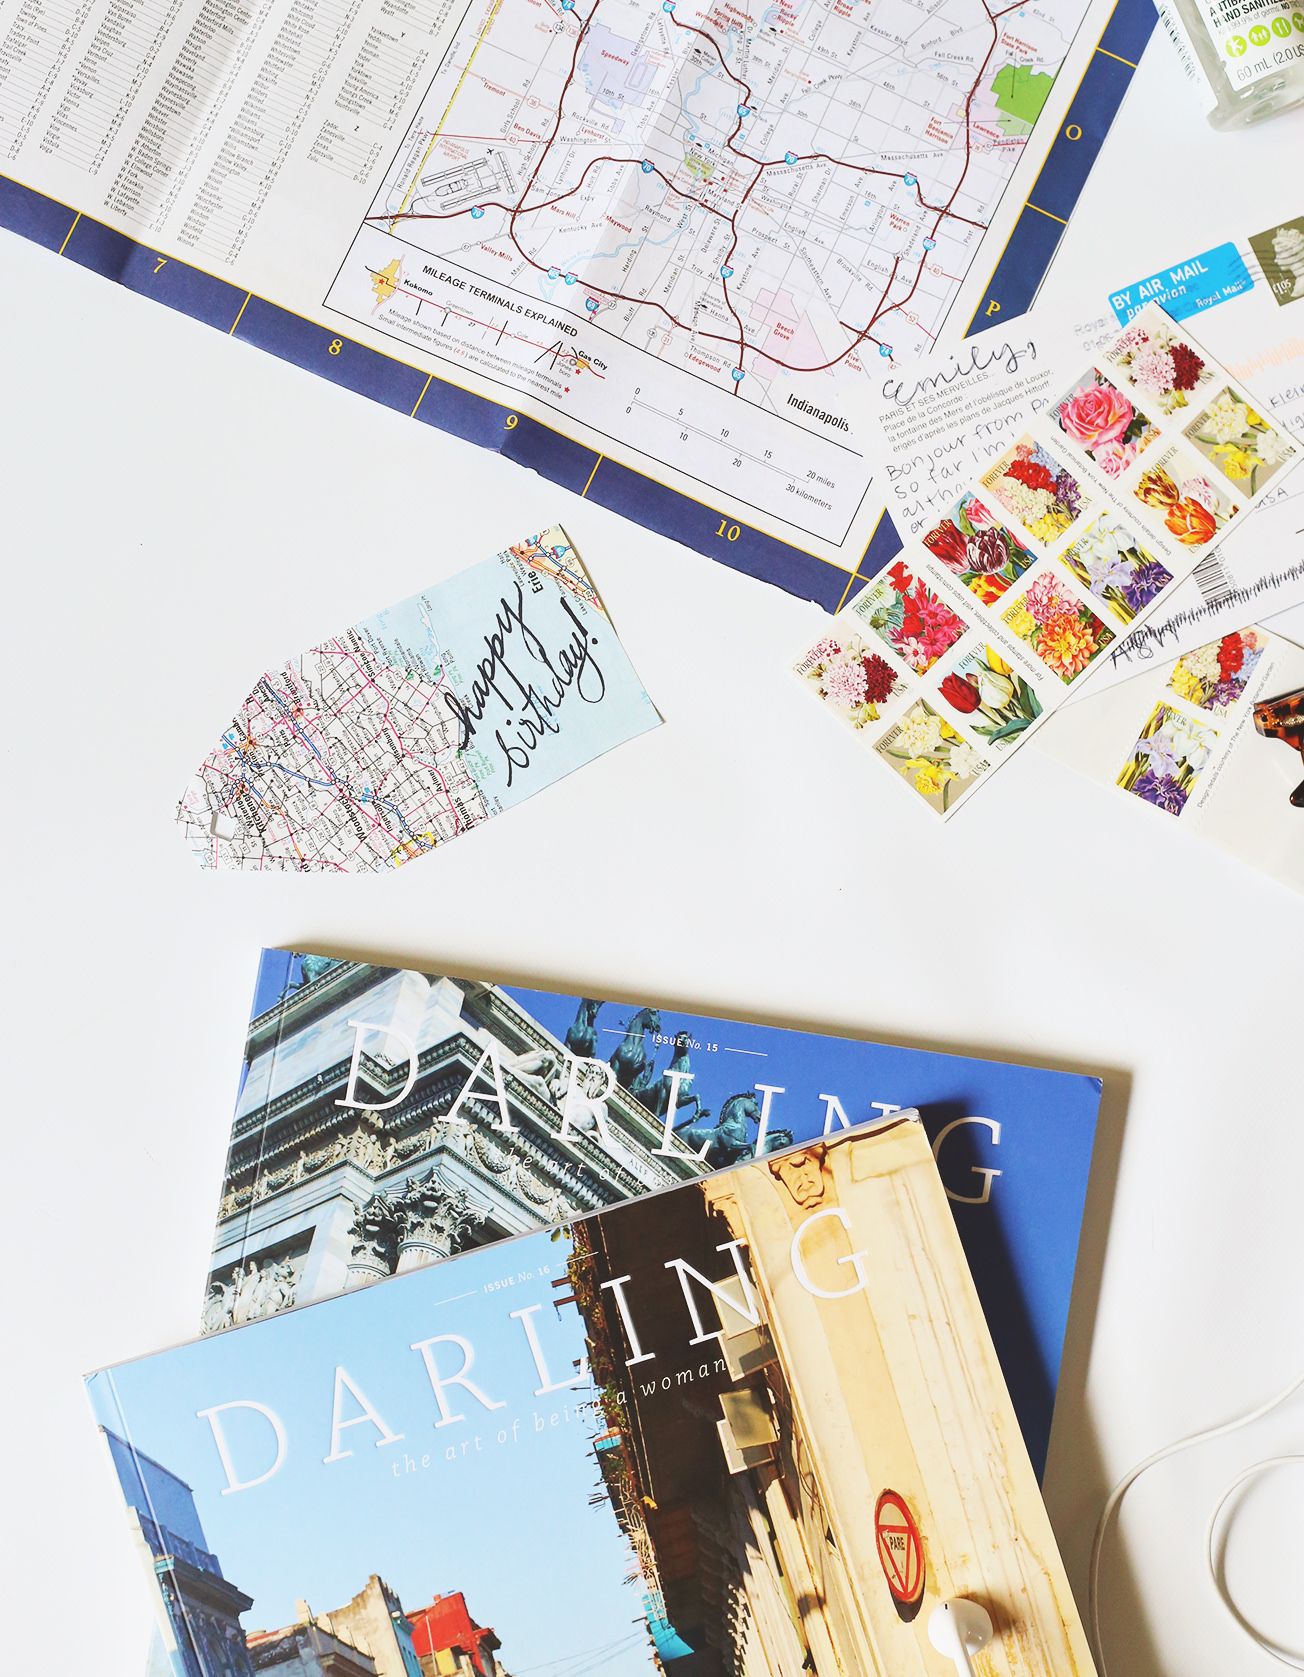 On your next road trip, pick up maps at a rest stop and use them to create gift tags or wrap gifts when you return!